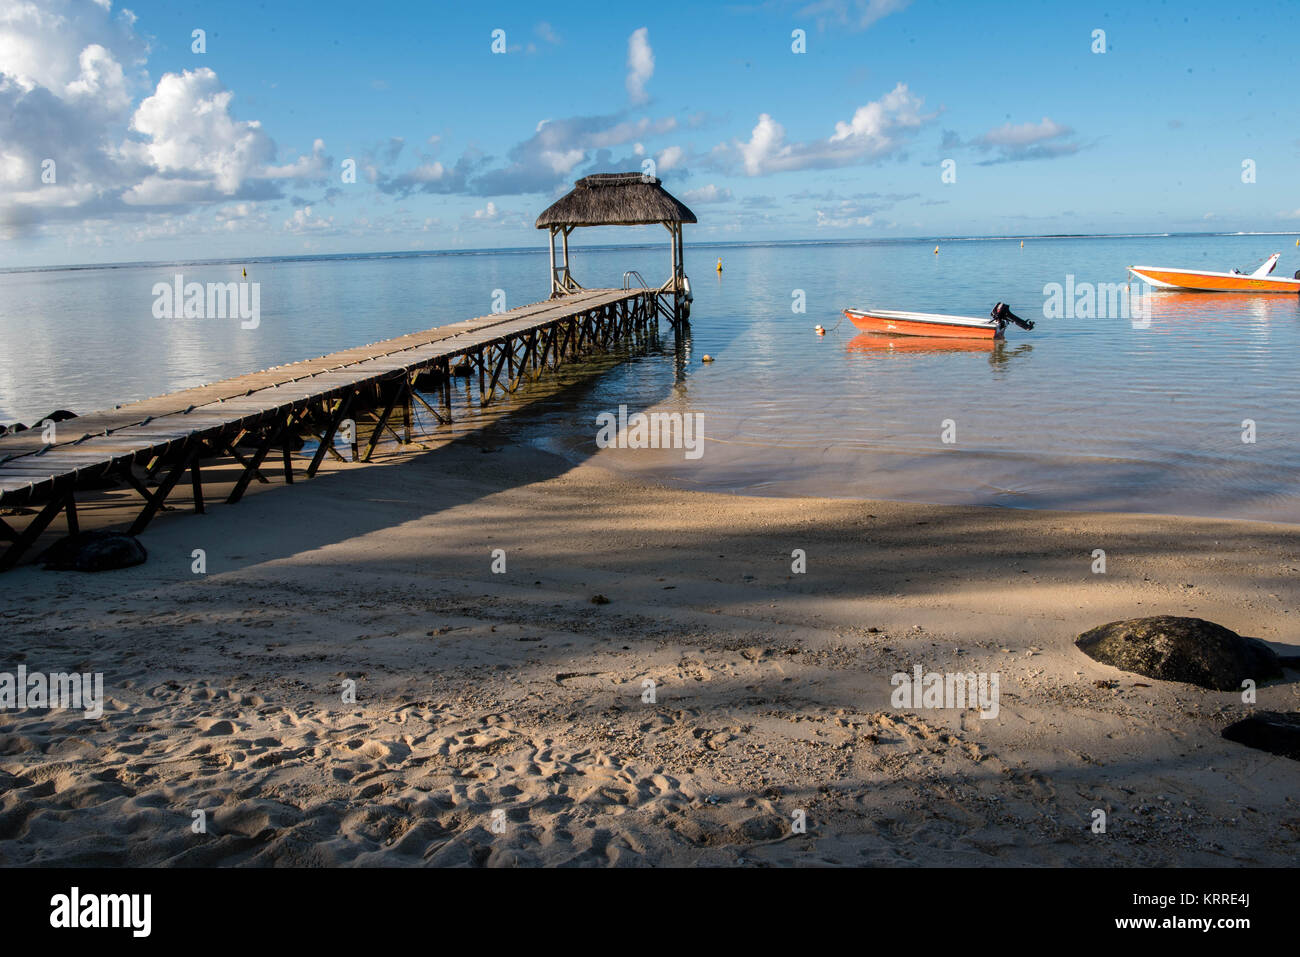 A beach at Bel Ombre, Mauritius - Stock Image